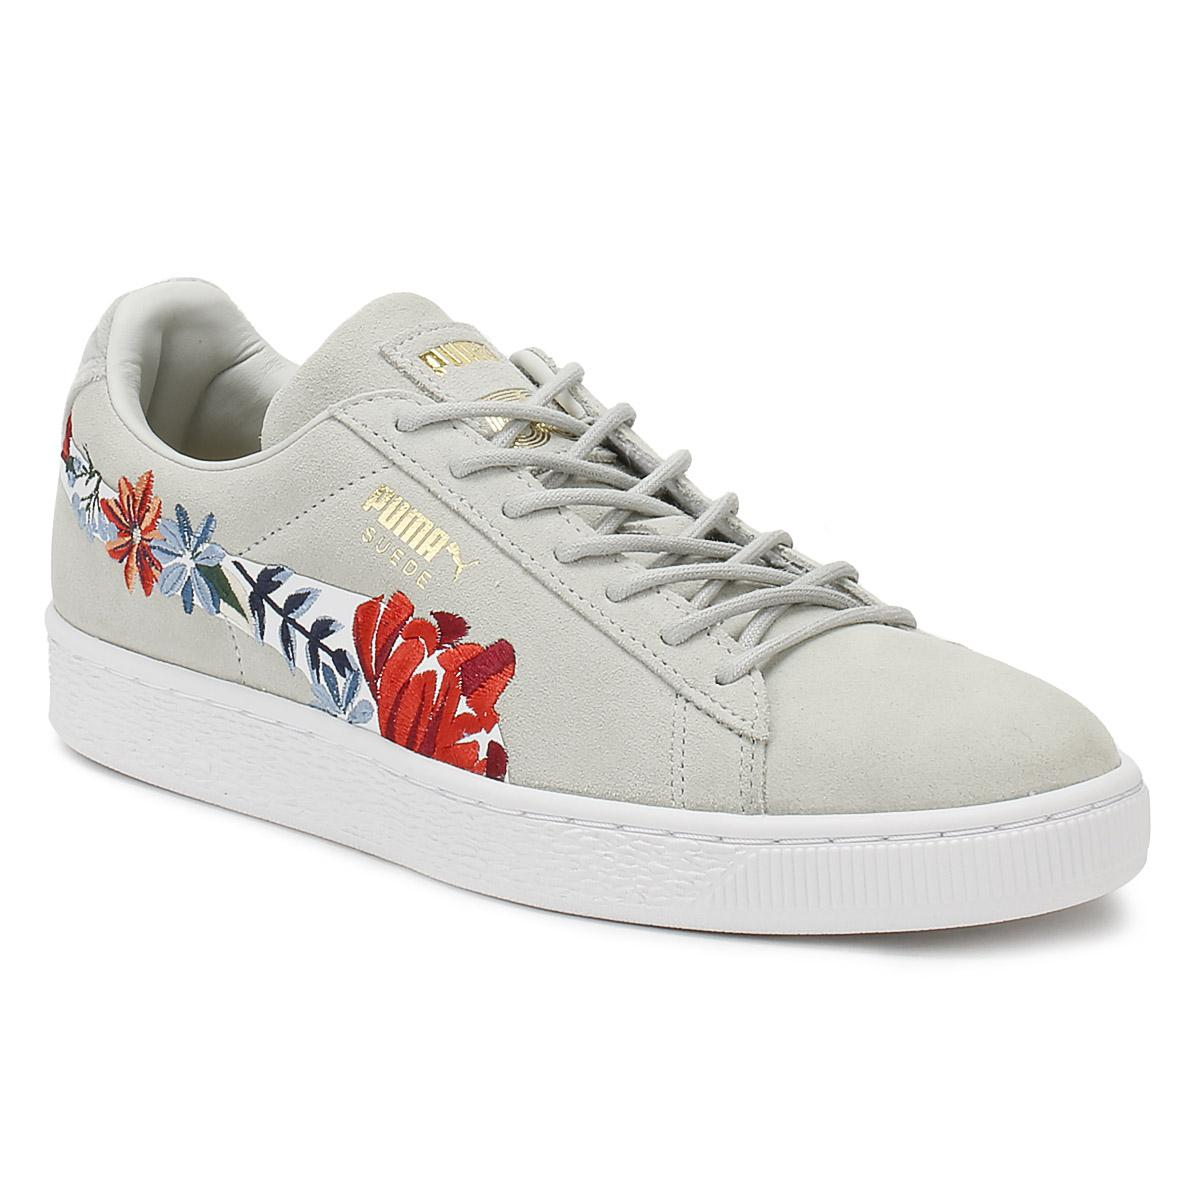 Puma Womens Glacier Grey Suede Classic Embroidery Trainers in Gray ... 0834fb0c33